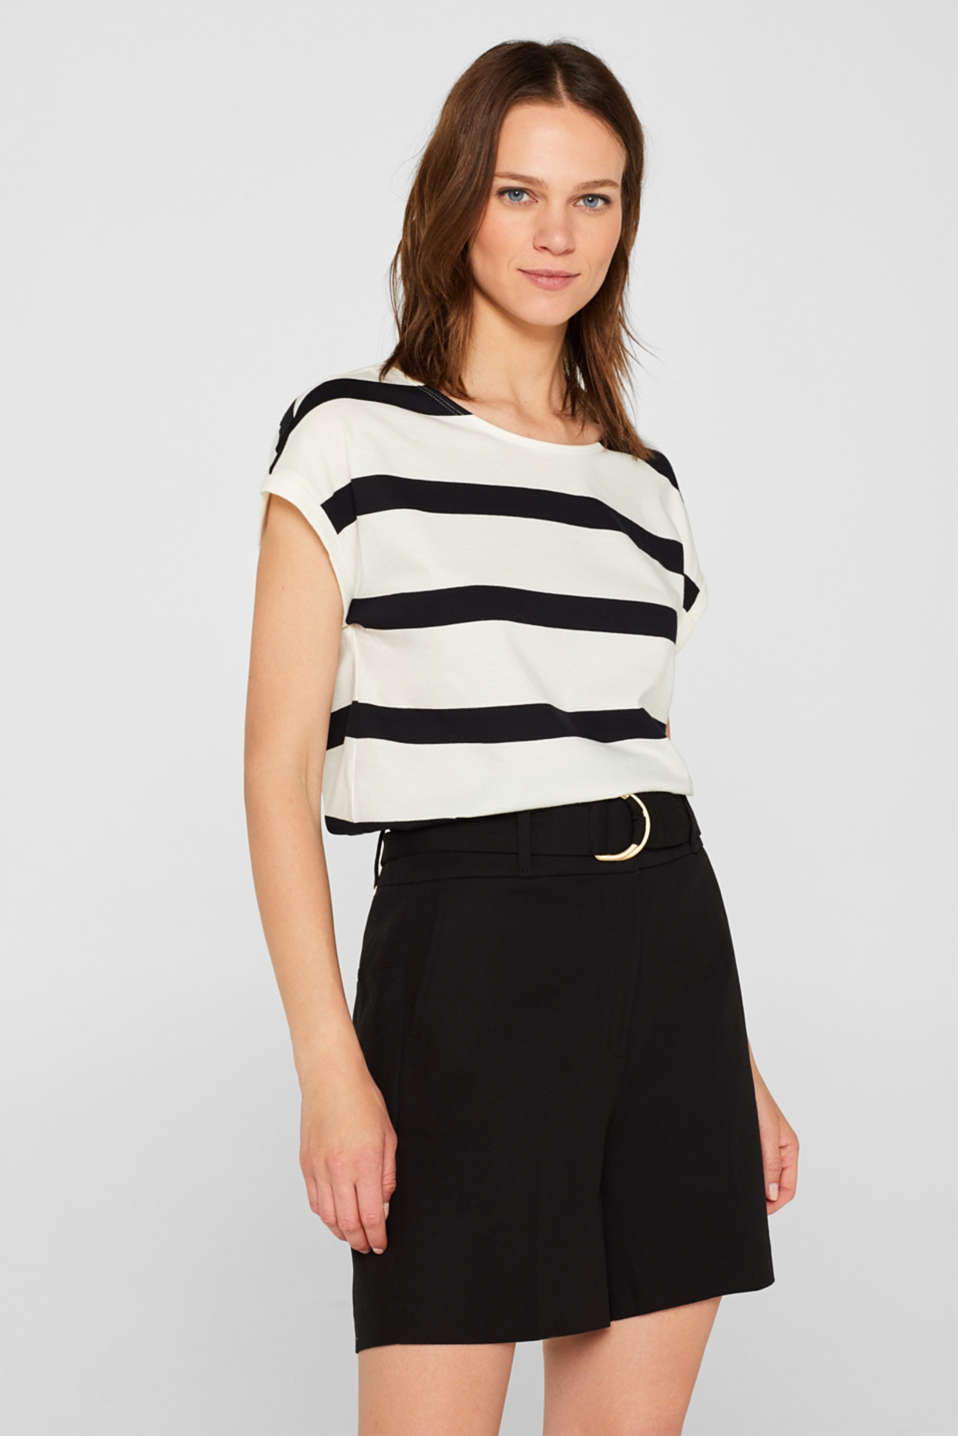 Esprit - Top with a sophisticated back, 100% cotton